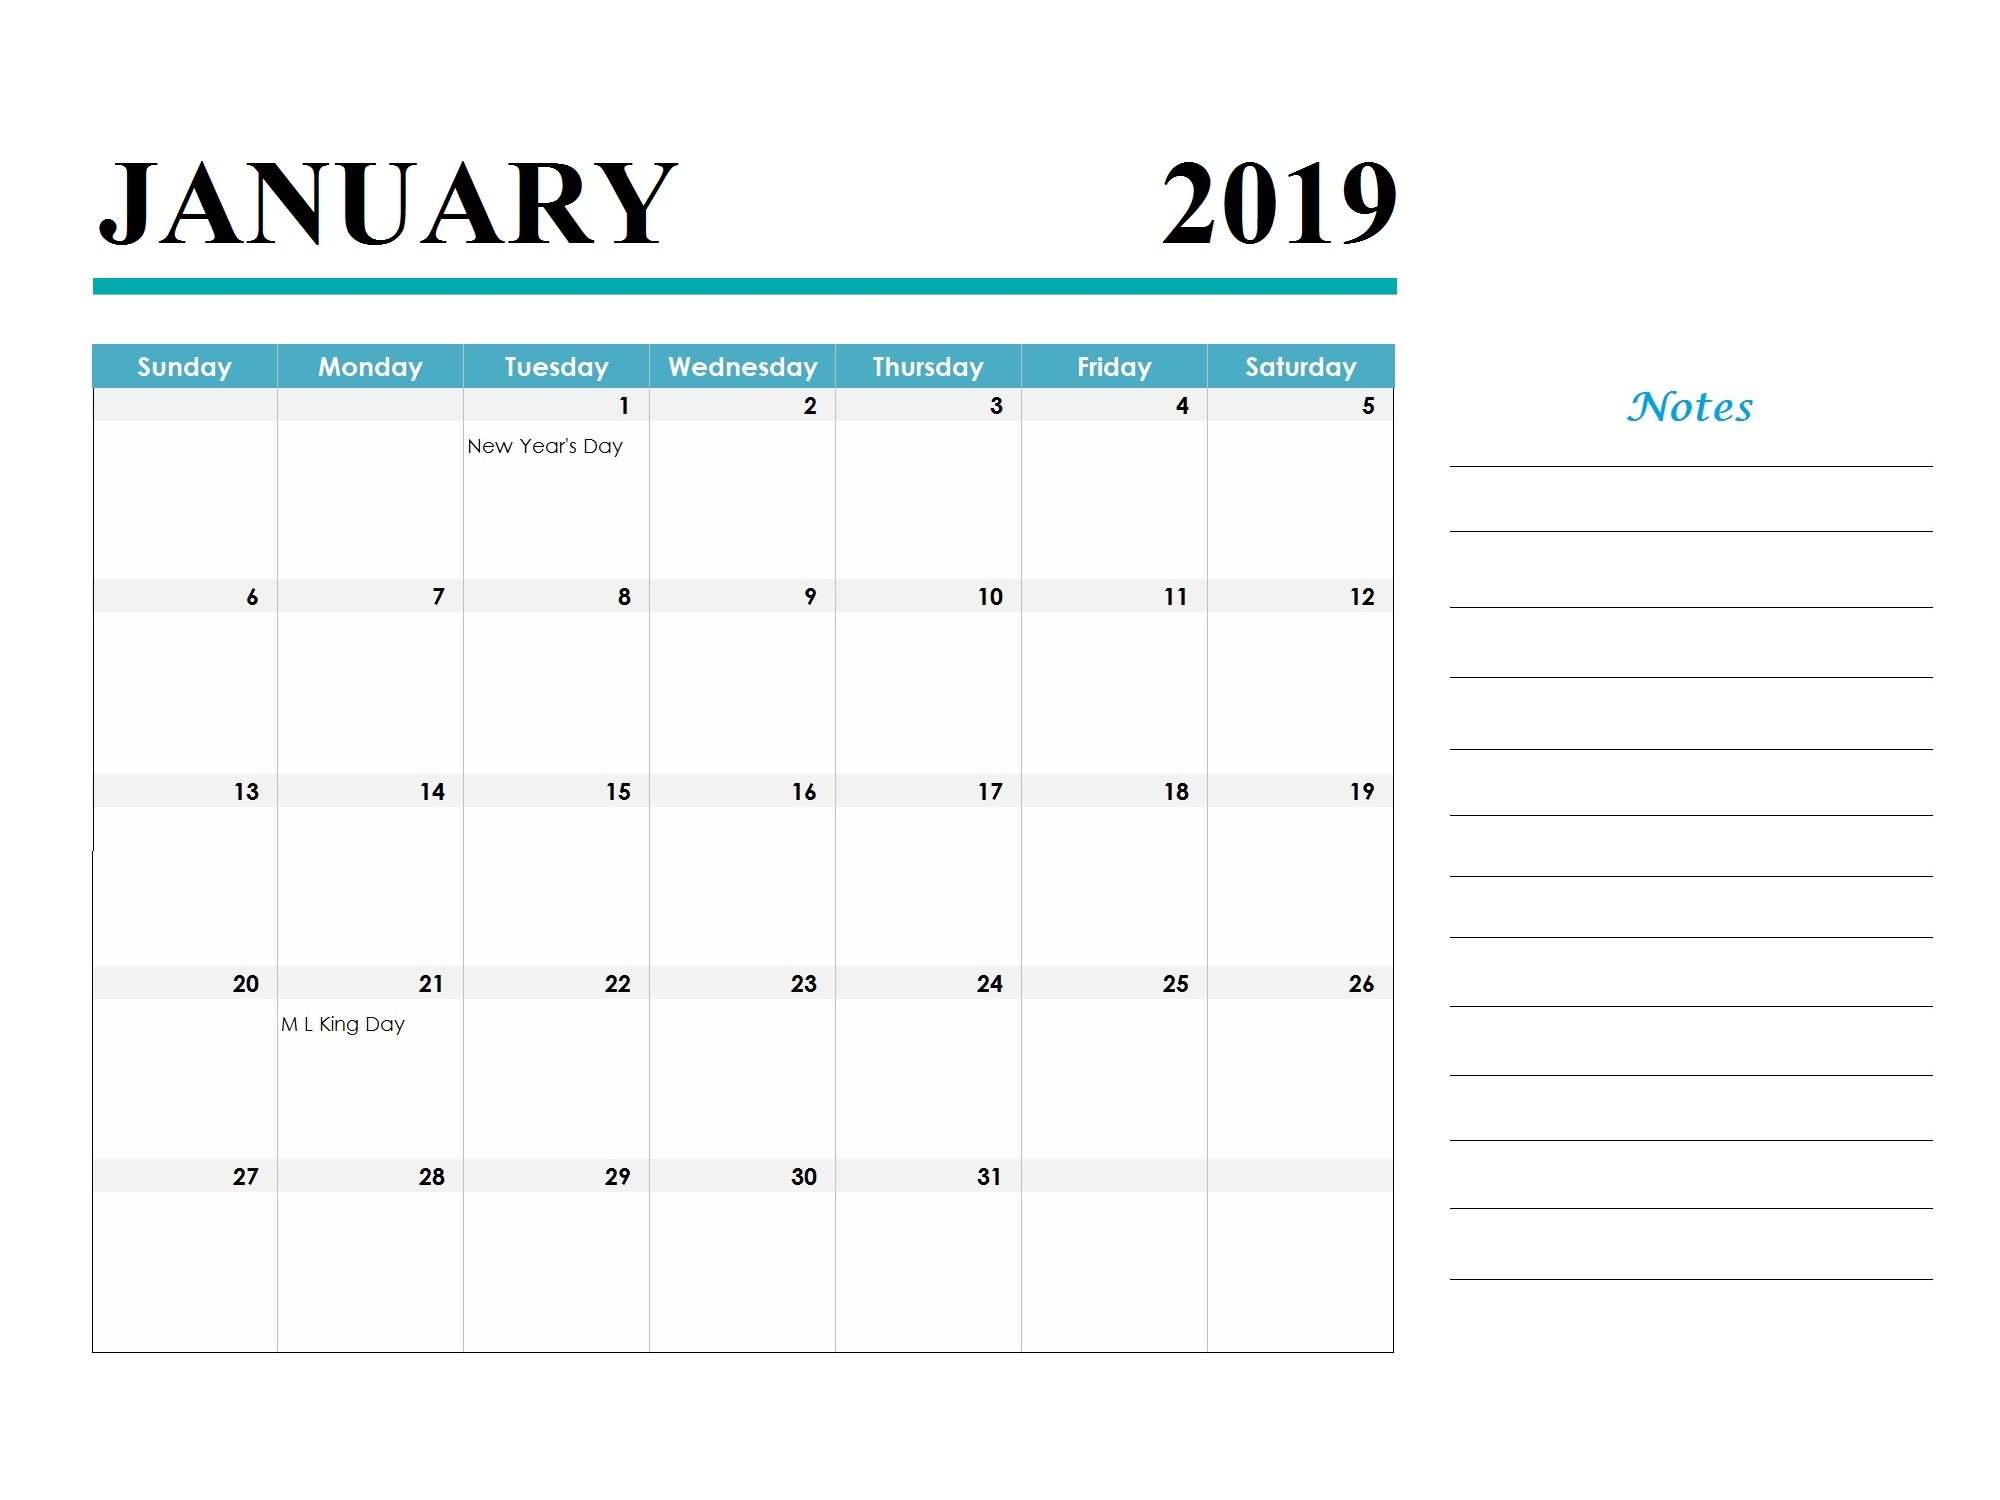 January 2019 Holidays Calendar Template